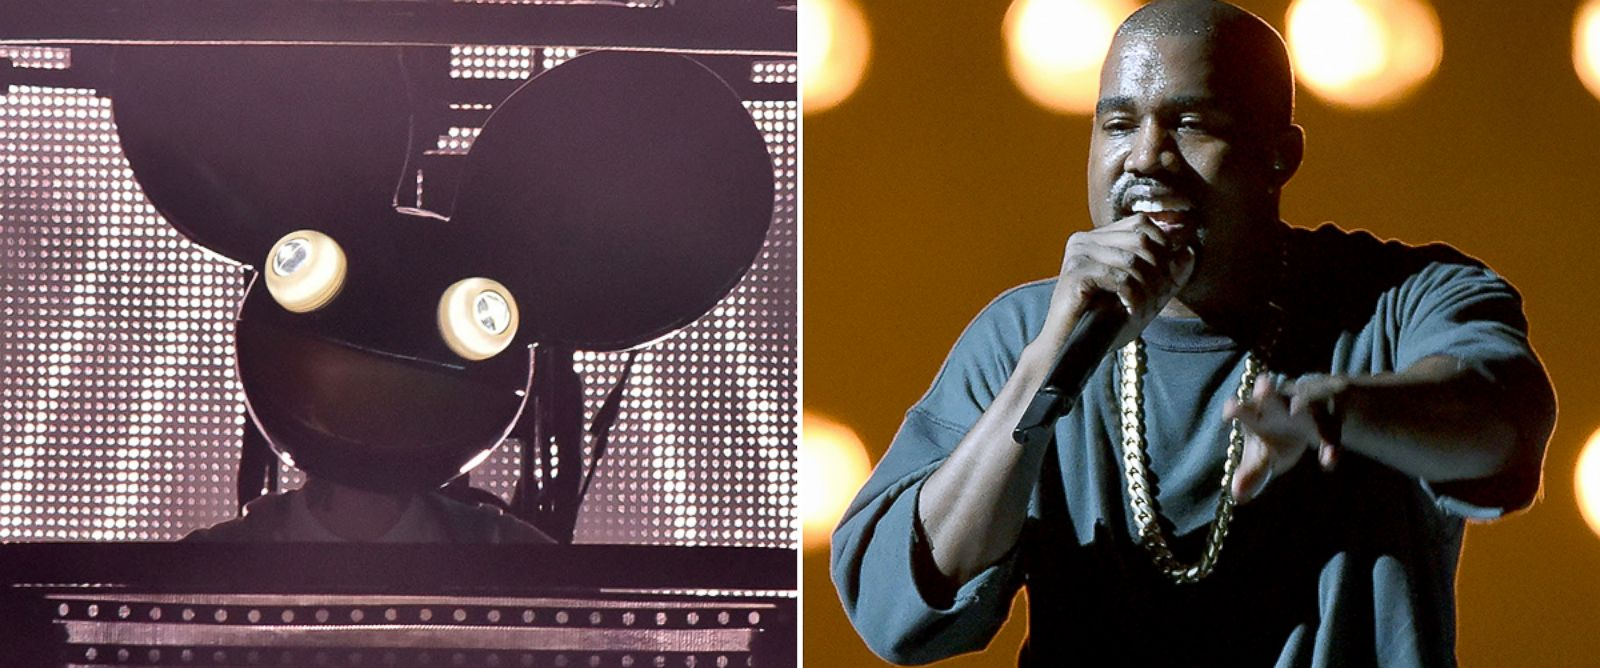 PHOTO: Deadmau5, left, performs a set. Kanye West, right, performs on stage.